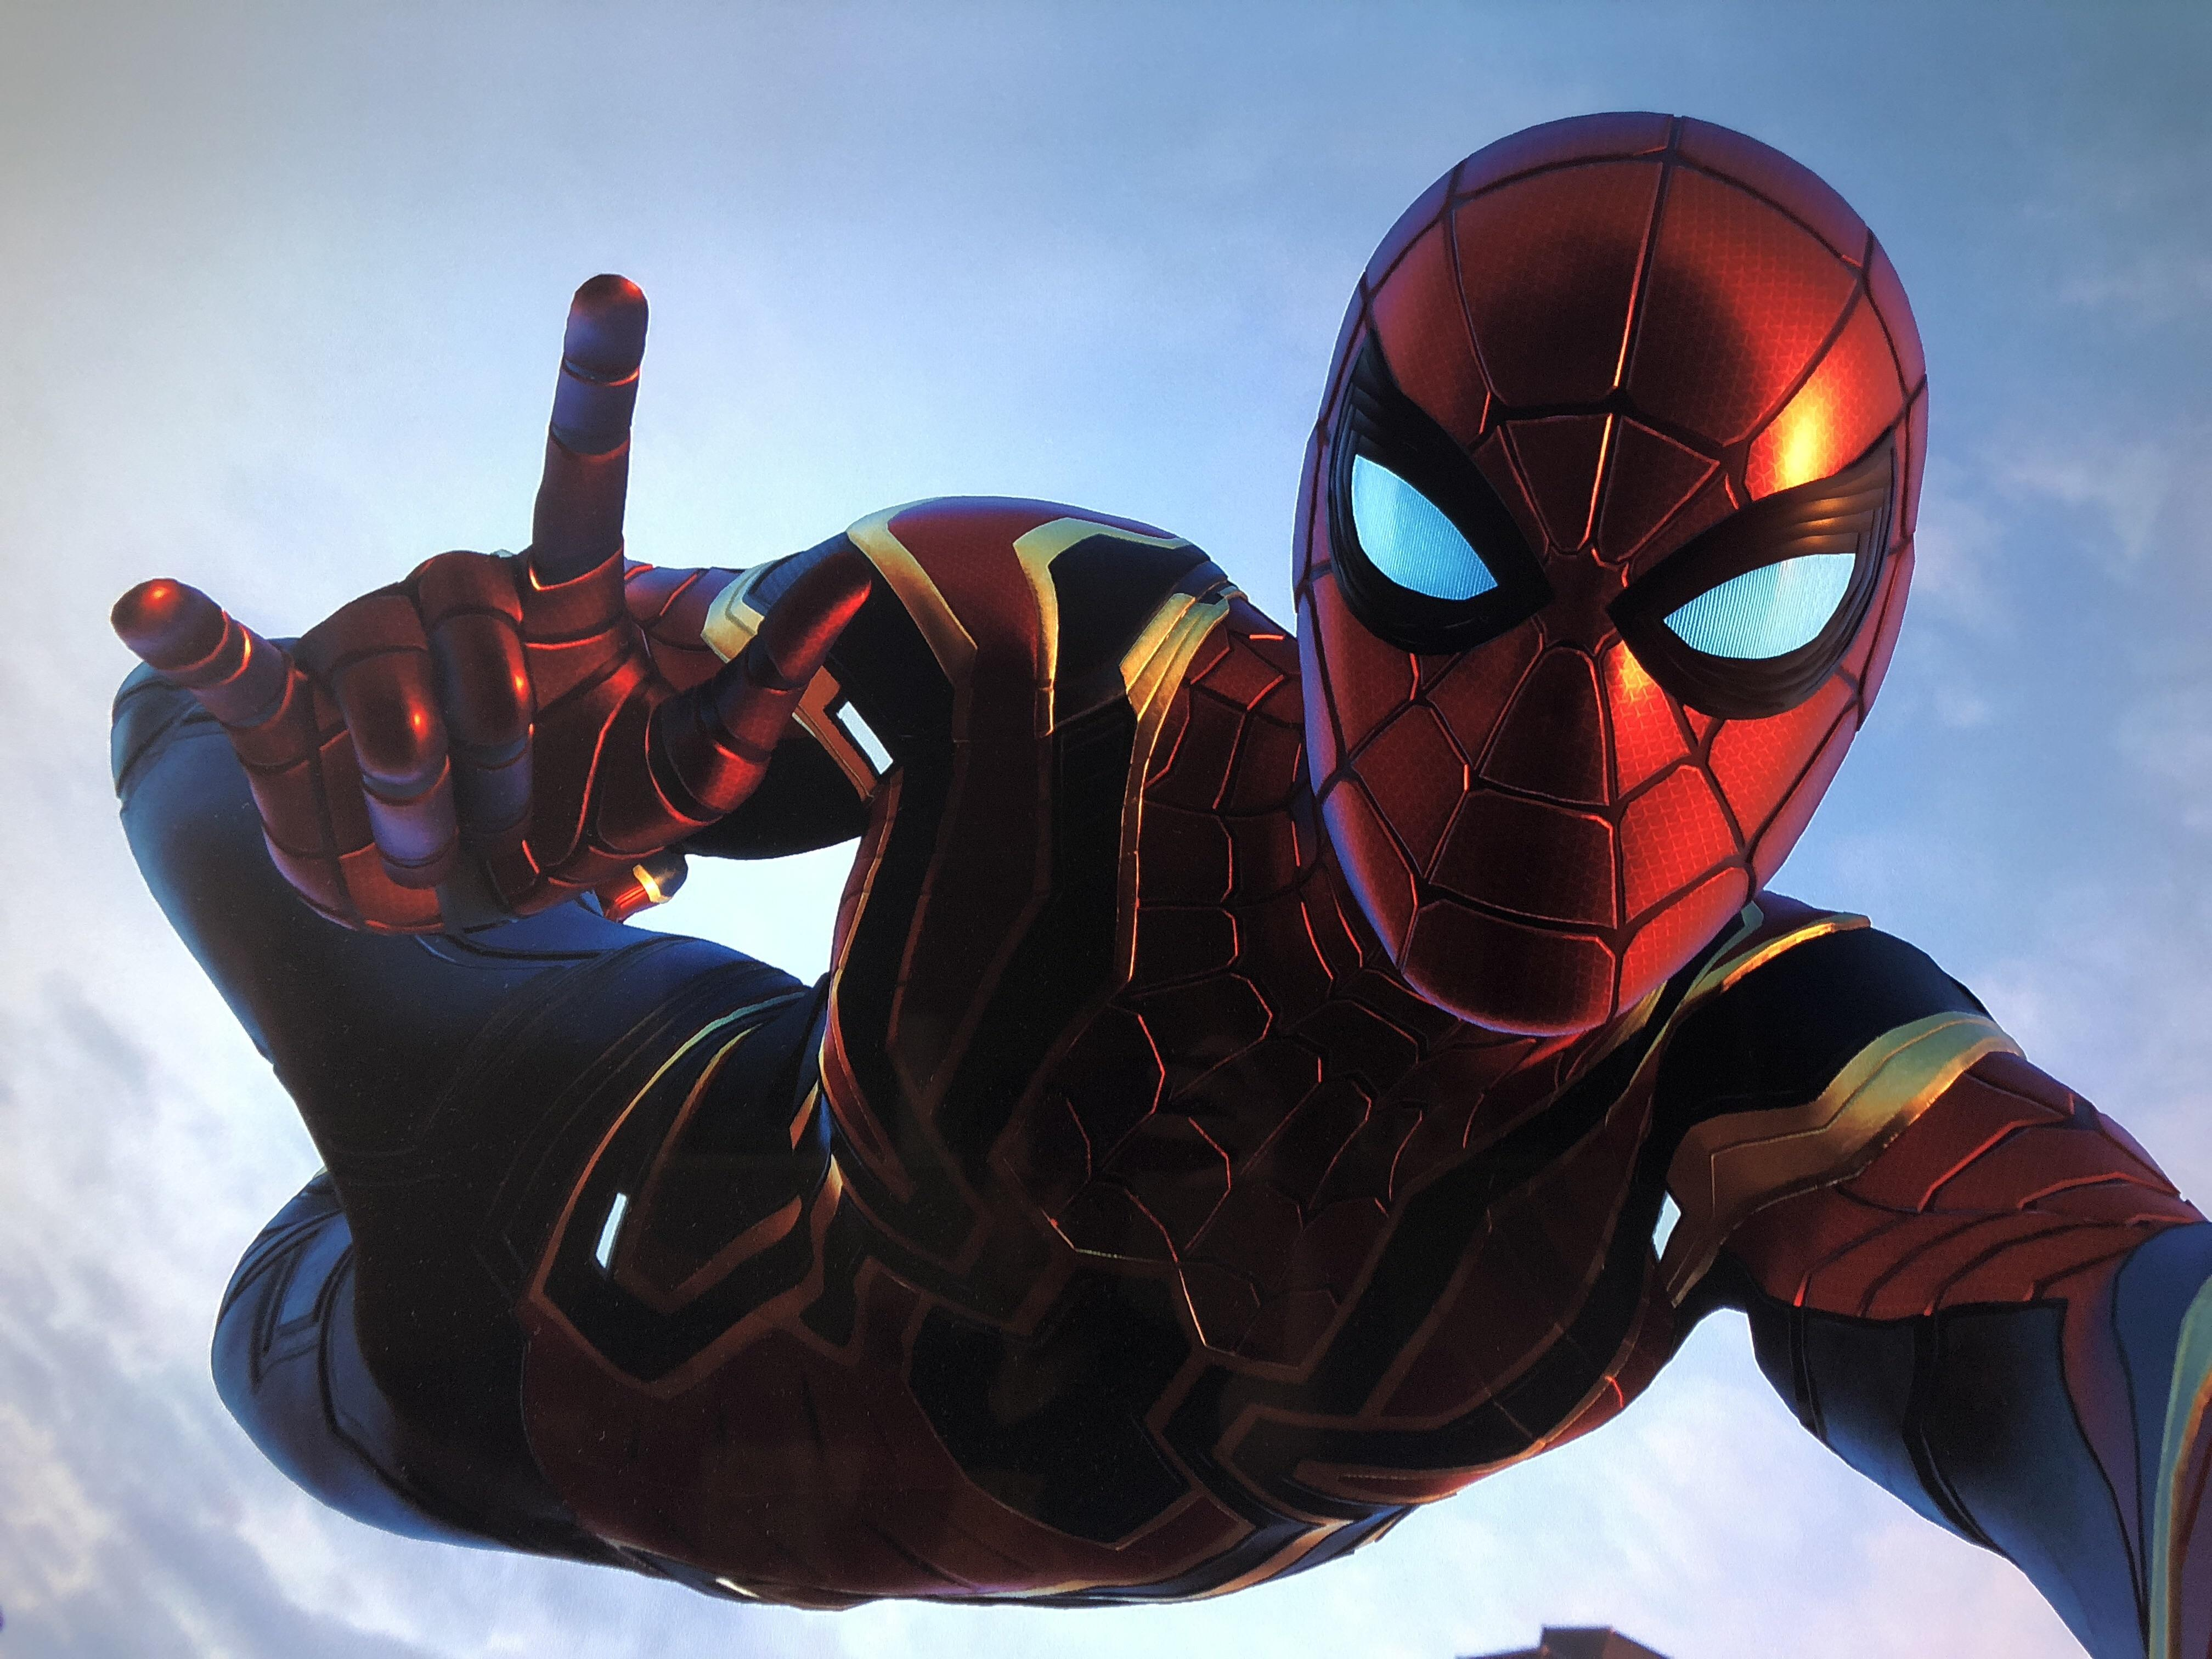 Spiderman Ps4 Wallpaper Hd Spiderman Iron Stark Suit Hd Games 4k Wallpapers Images